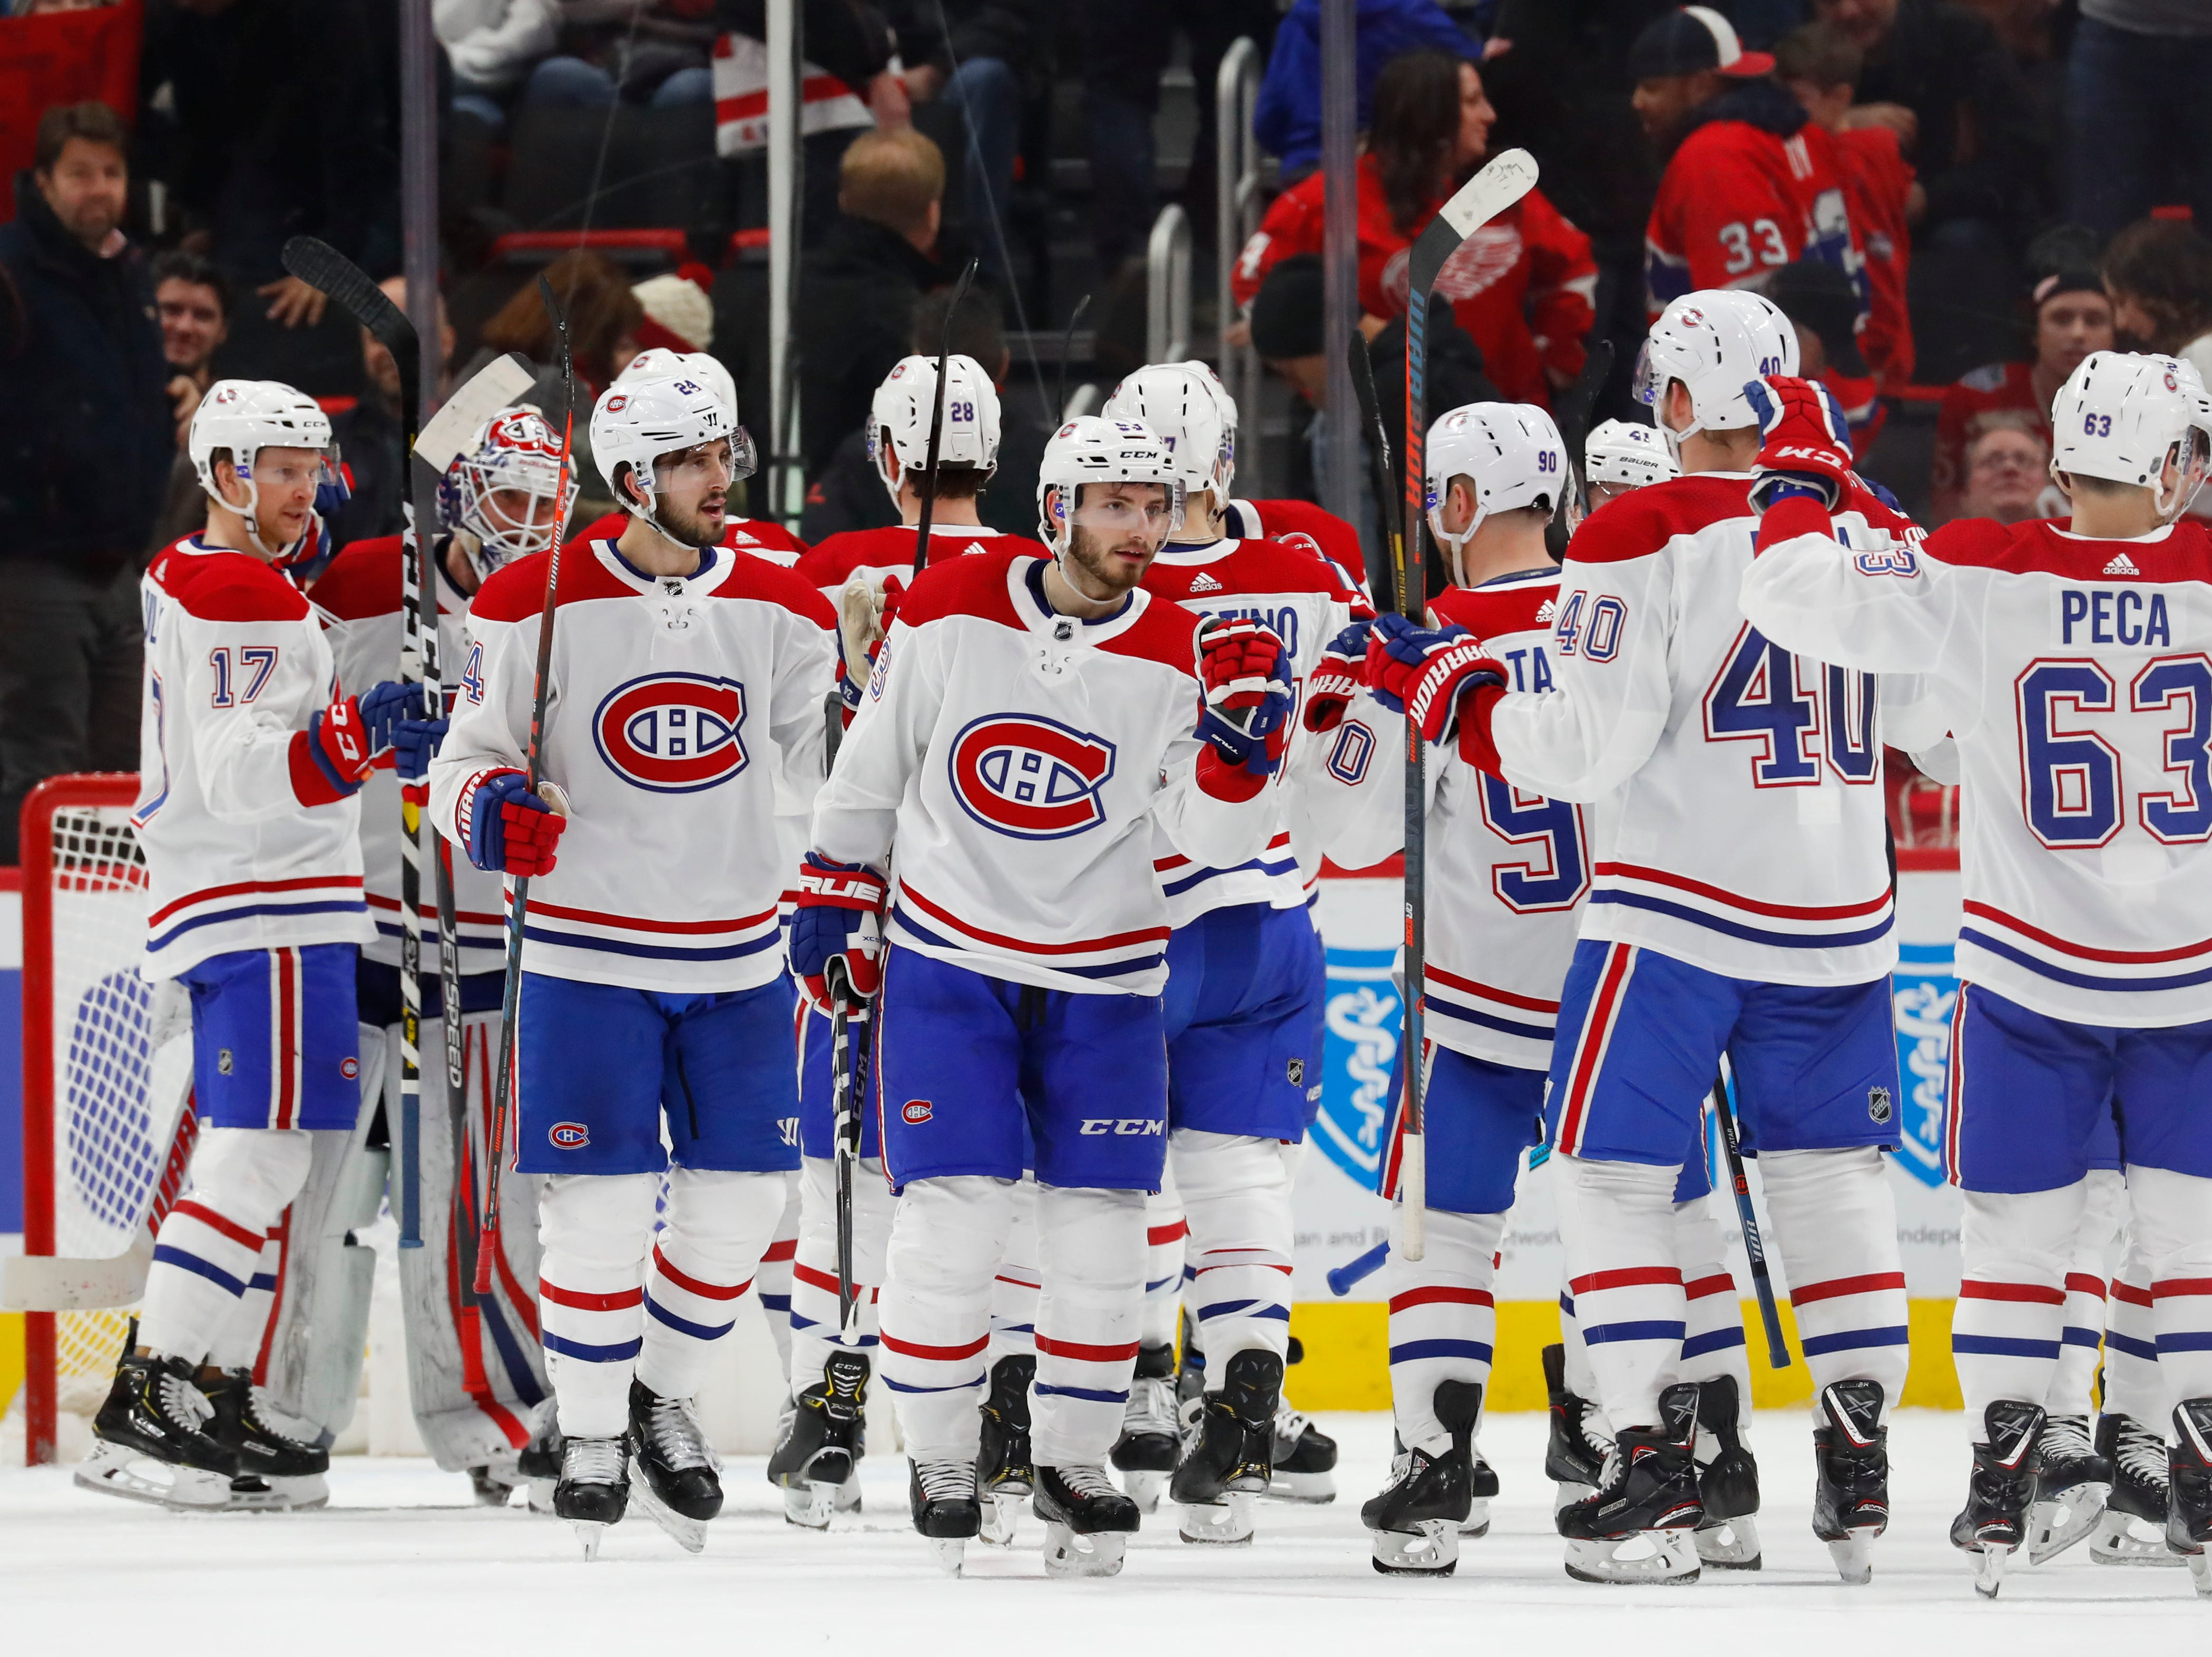 Montreal Canadiens players celebrate their 3-2 win against the Detroit Red Wings.